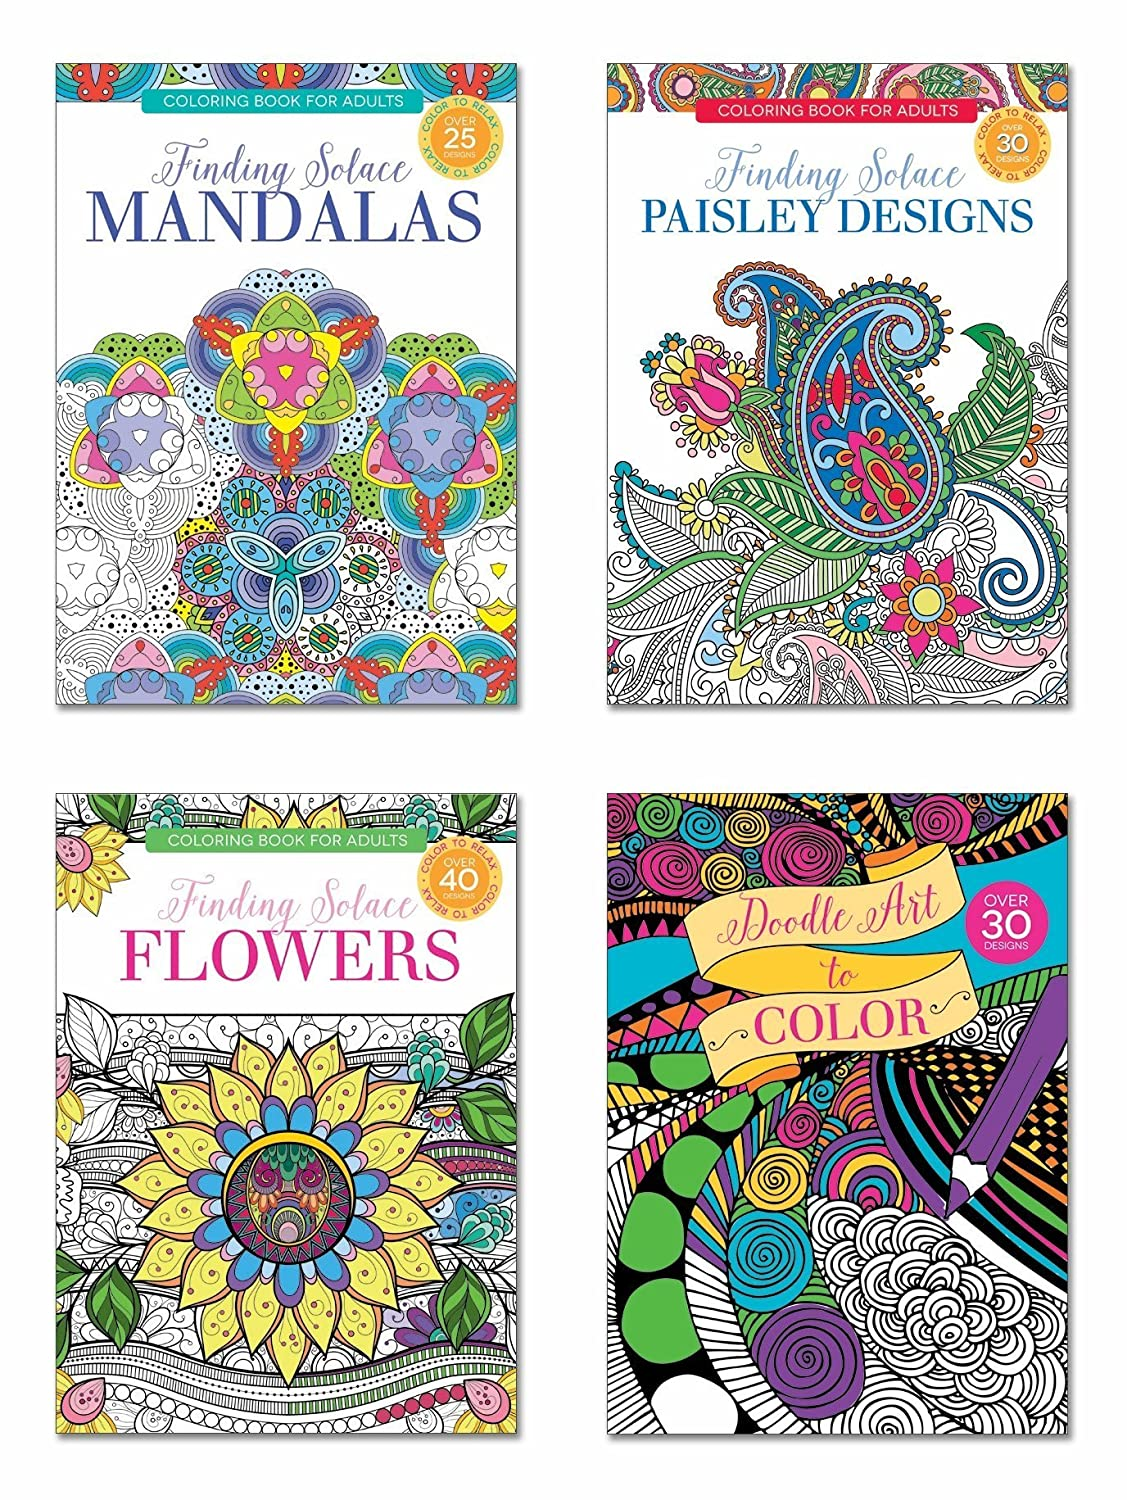 B-THERE Adult Coloring Books, Over 125 Different Designs Combined, Mandala Coloring Books for Adults with Detailed Flower Designs Printed on Heavy Paper, Set of 4 International Greetings 81358-81359-81360-81361